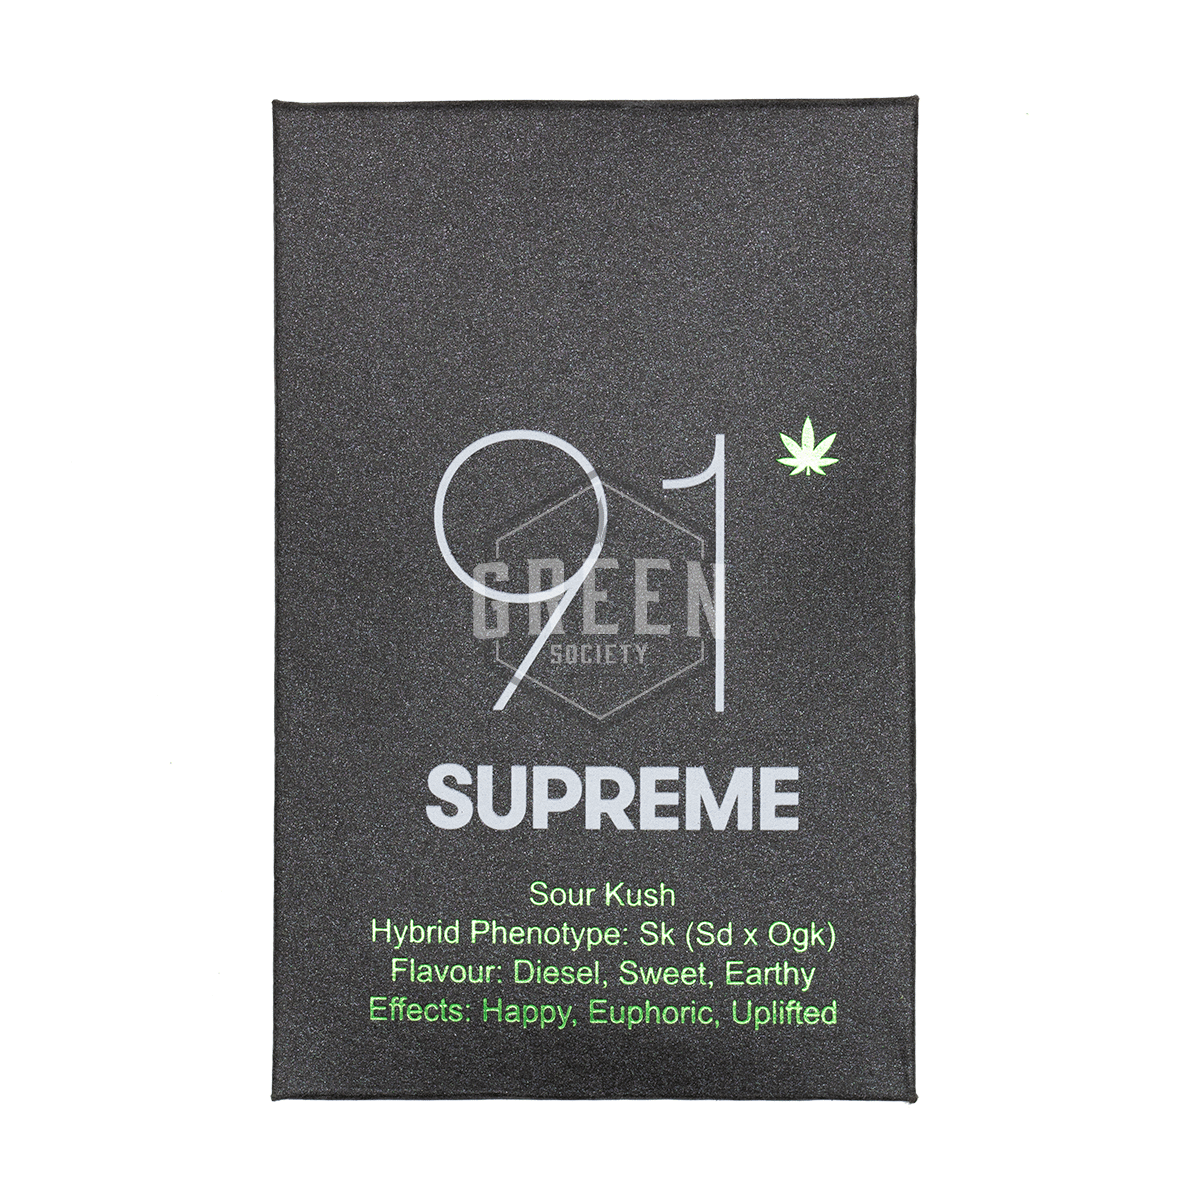 Sour Kush Shatter by 91 Supreme by Green Society - Image © 2018 Green Society. All Rights Reserved.